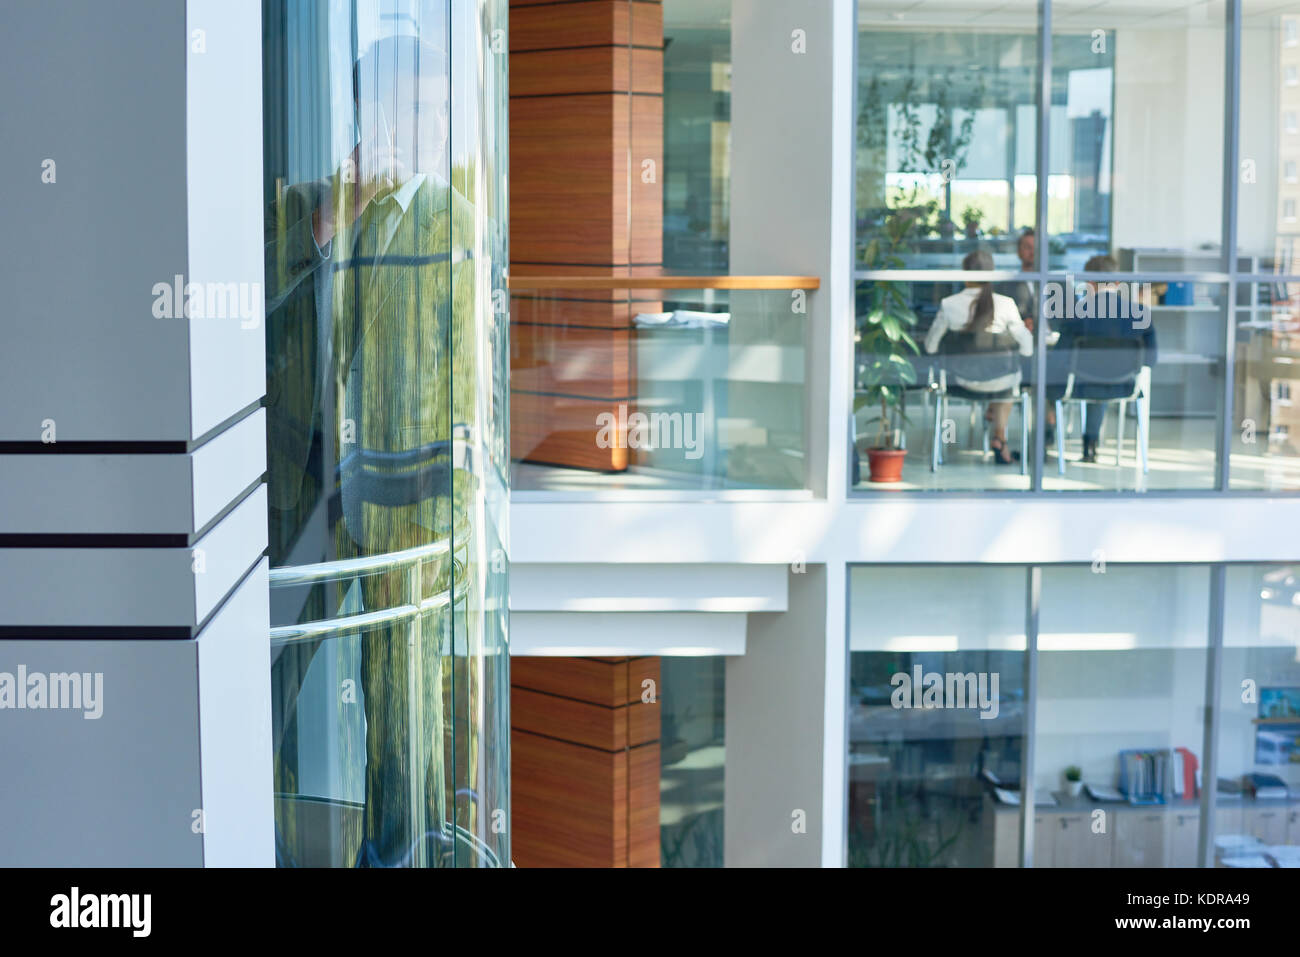 Interior of Busy Office Building - Stock Image